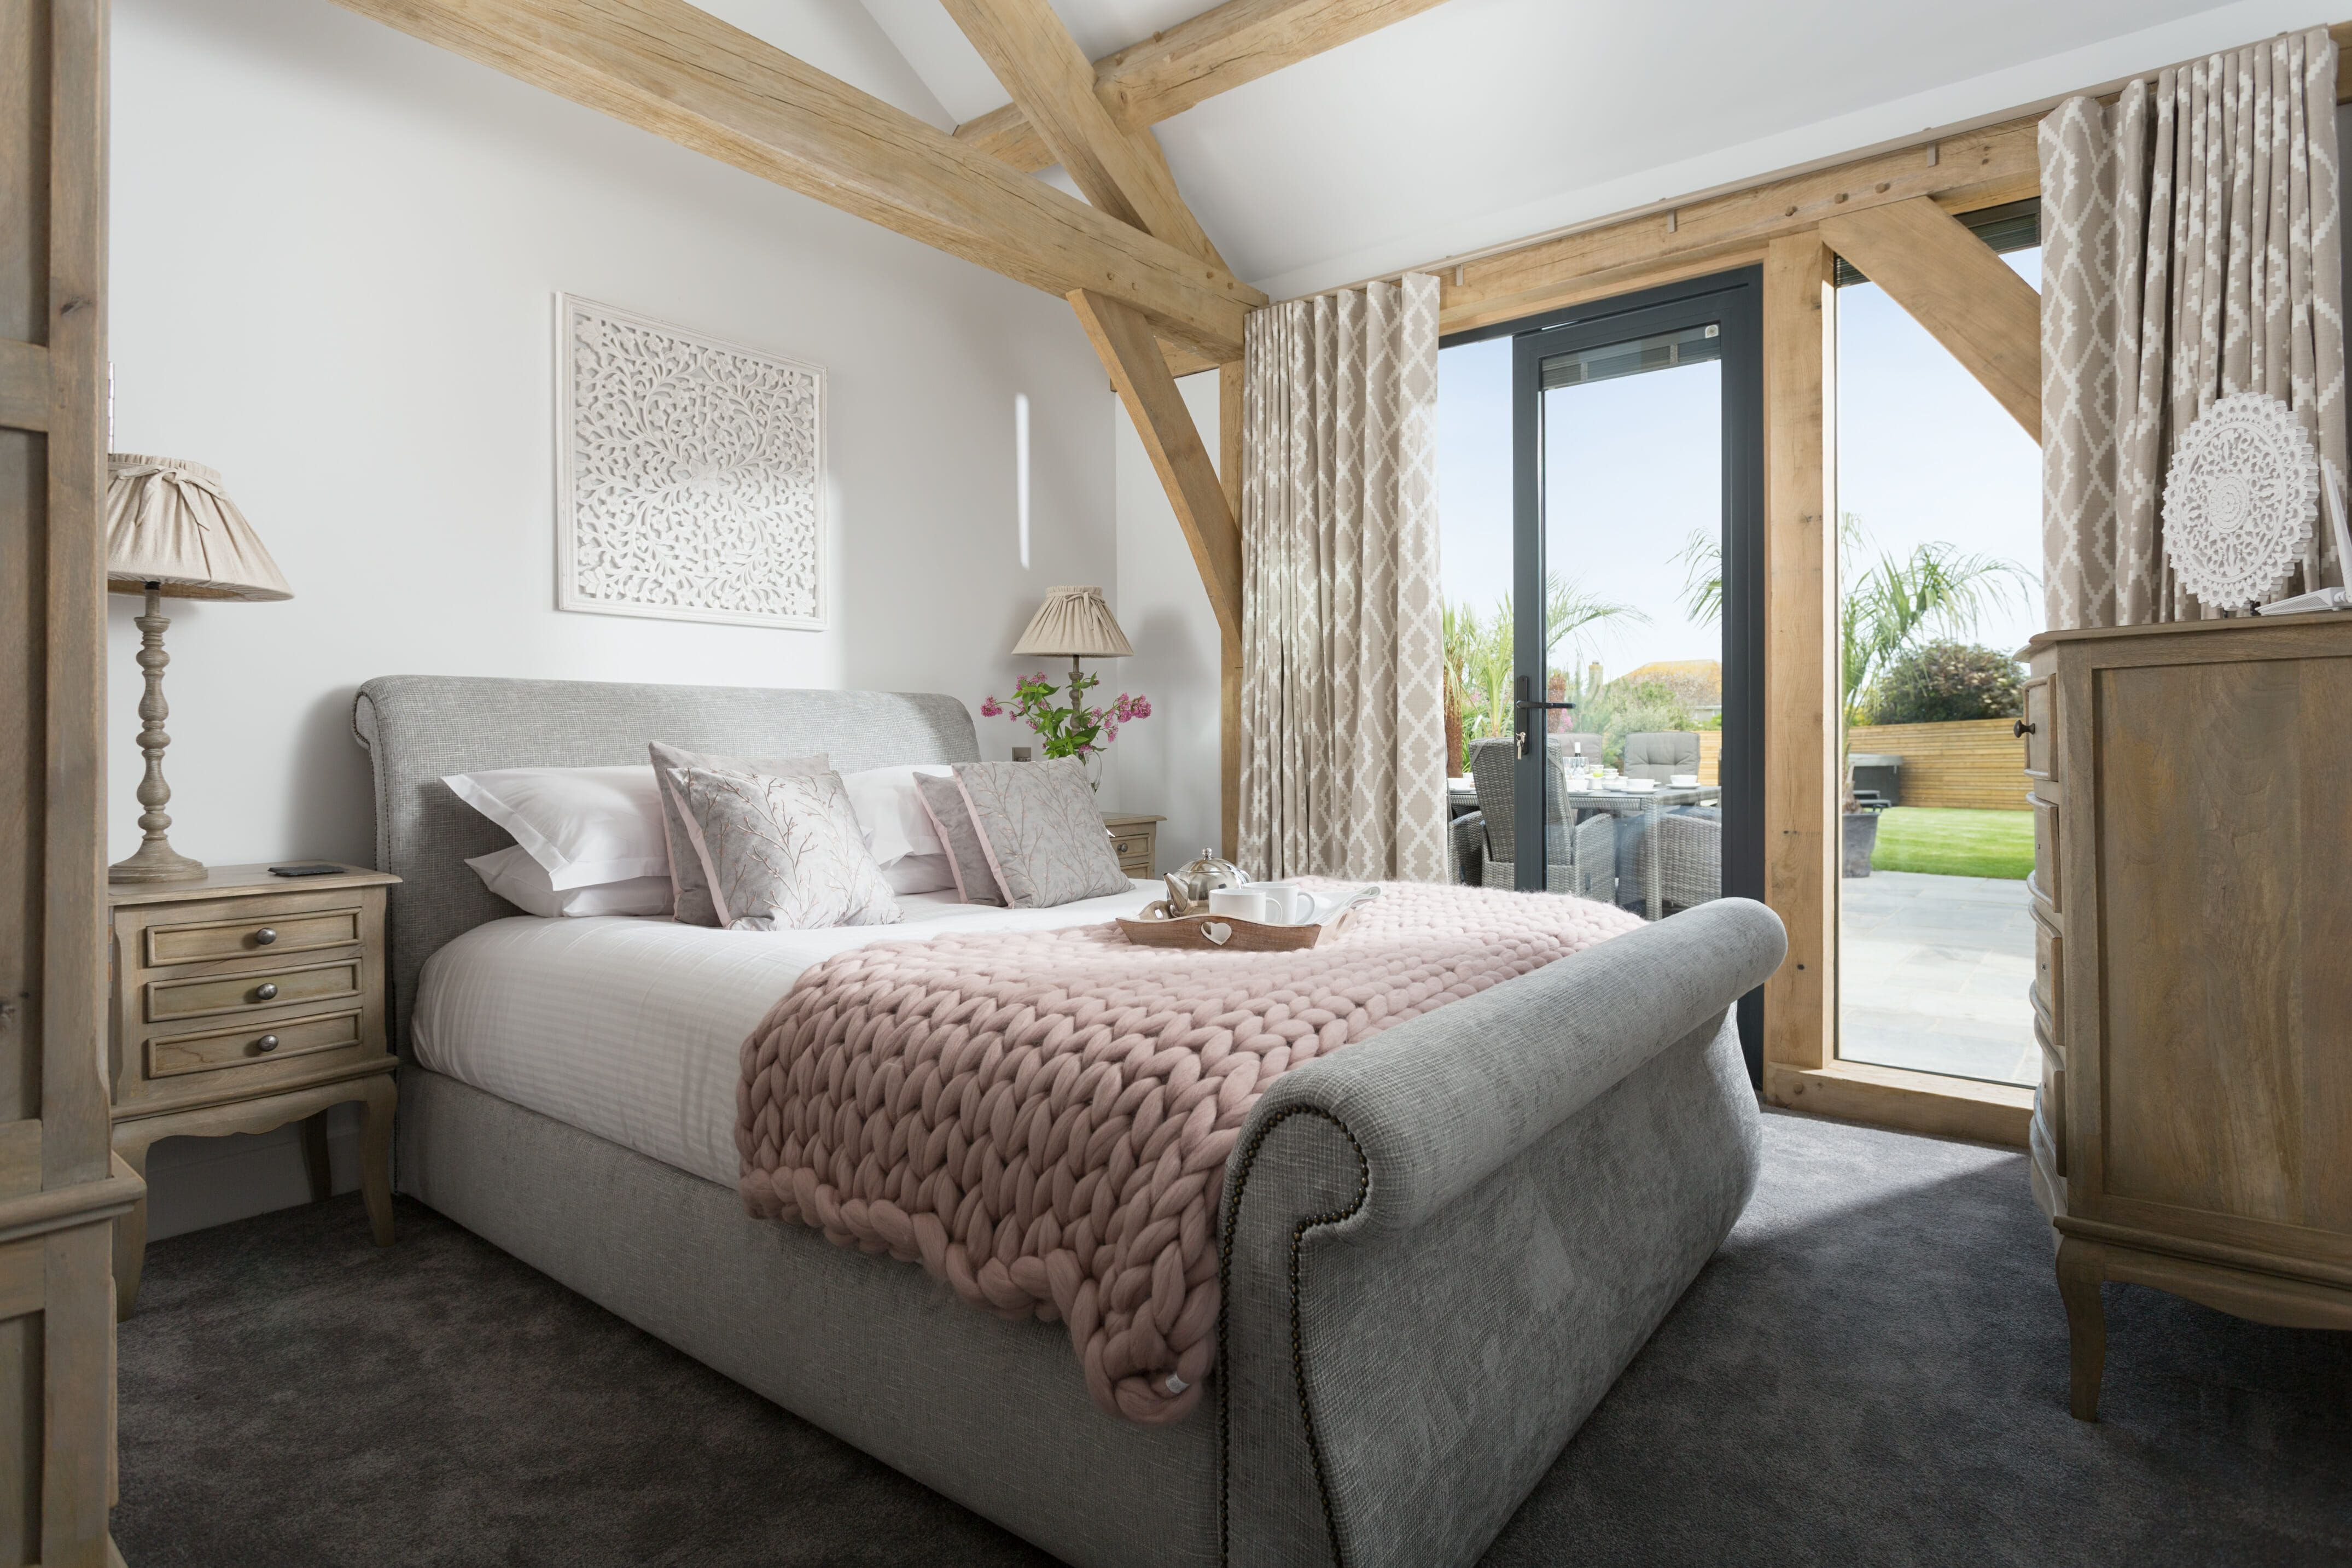 Blind Treatments The Beach Barn In Newquay Has Been Flawlessly